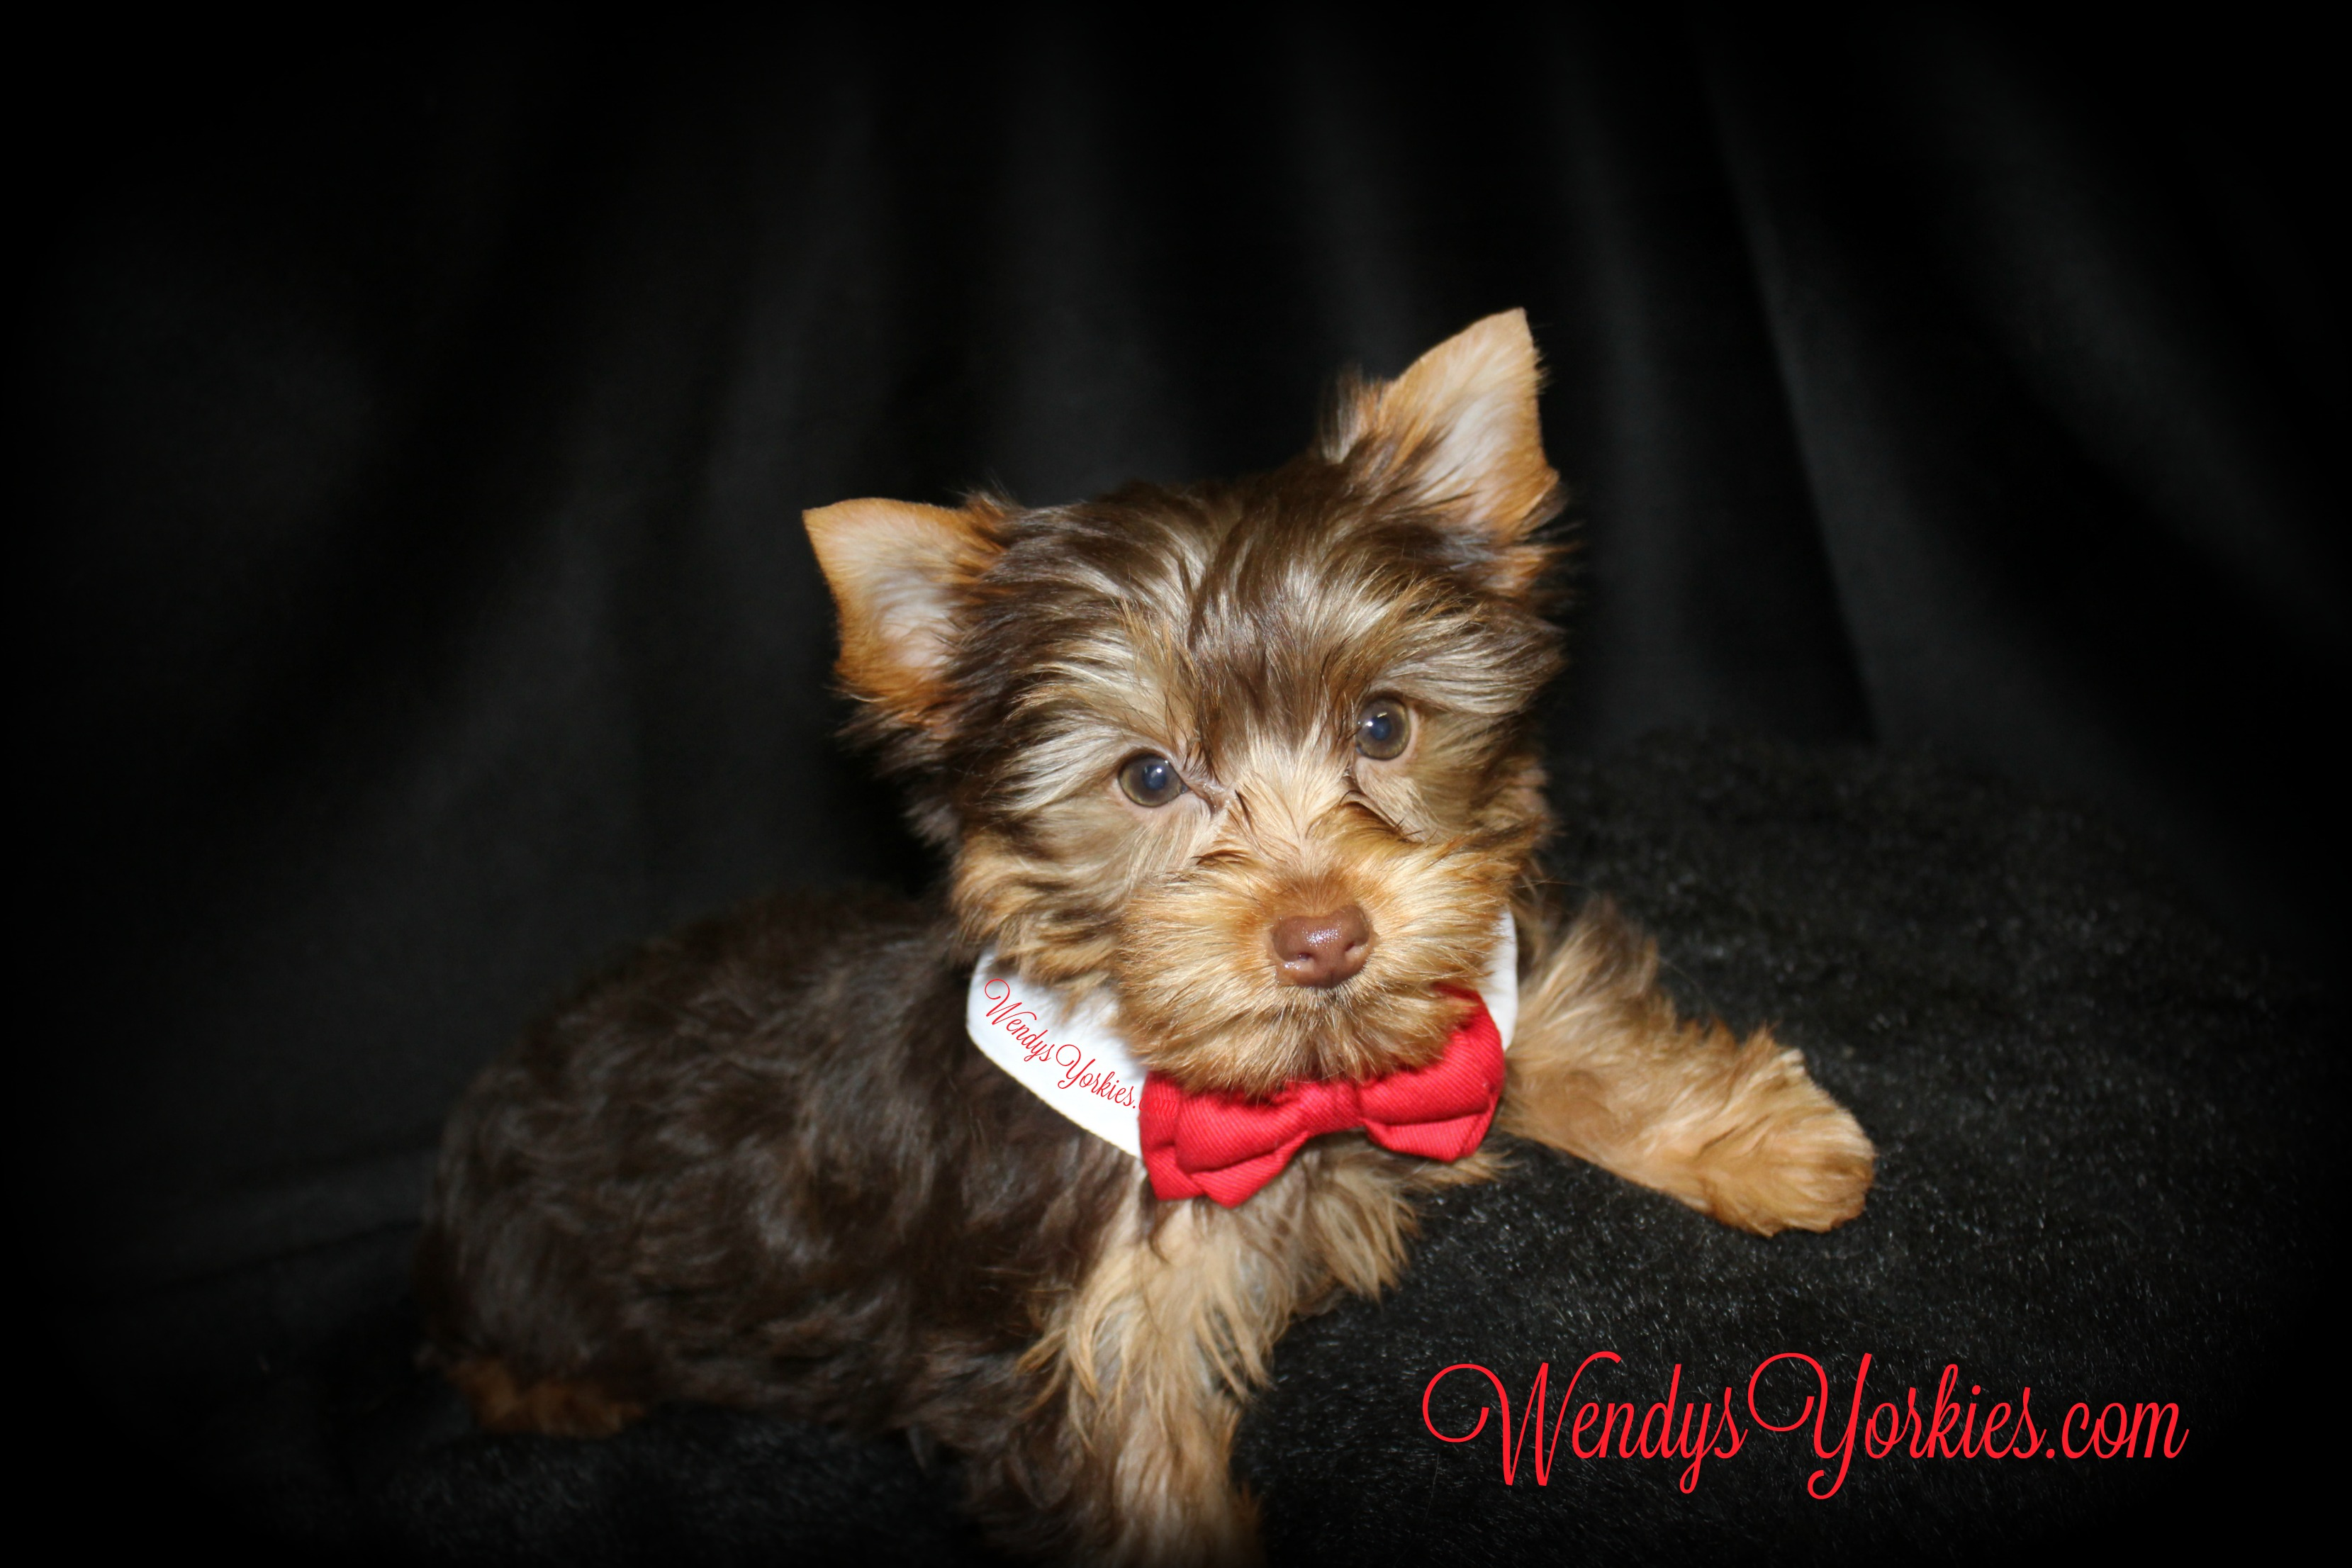 Tiny Chocolate Yorkie puppy for sale, WendysYorkies.com, Daisy cm1